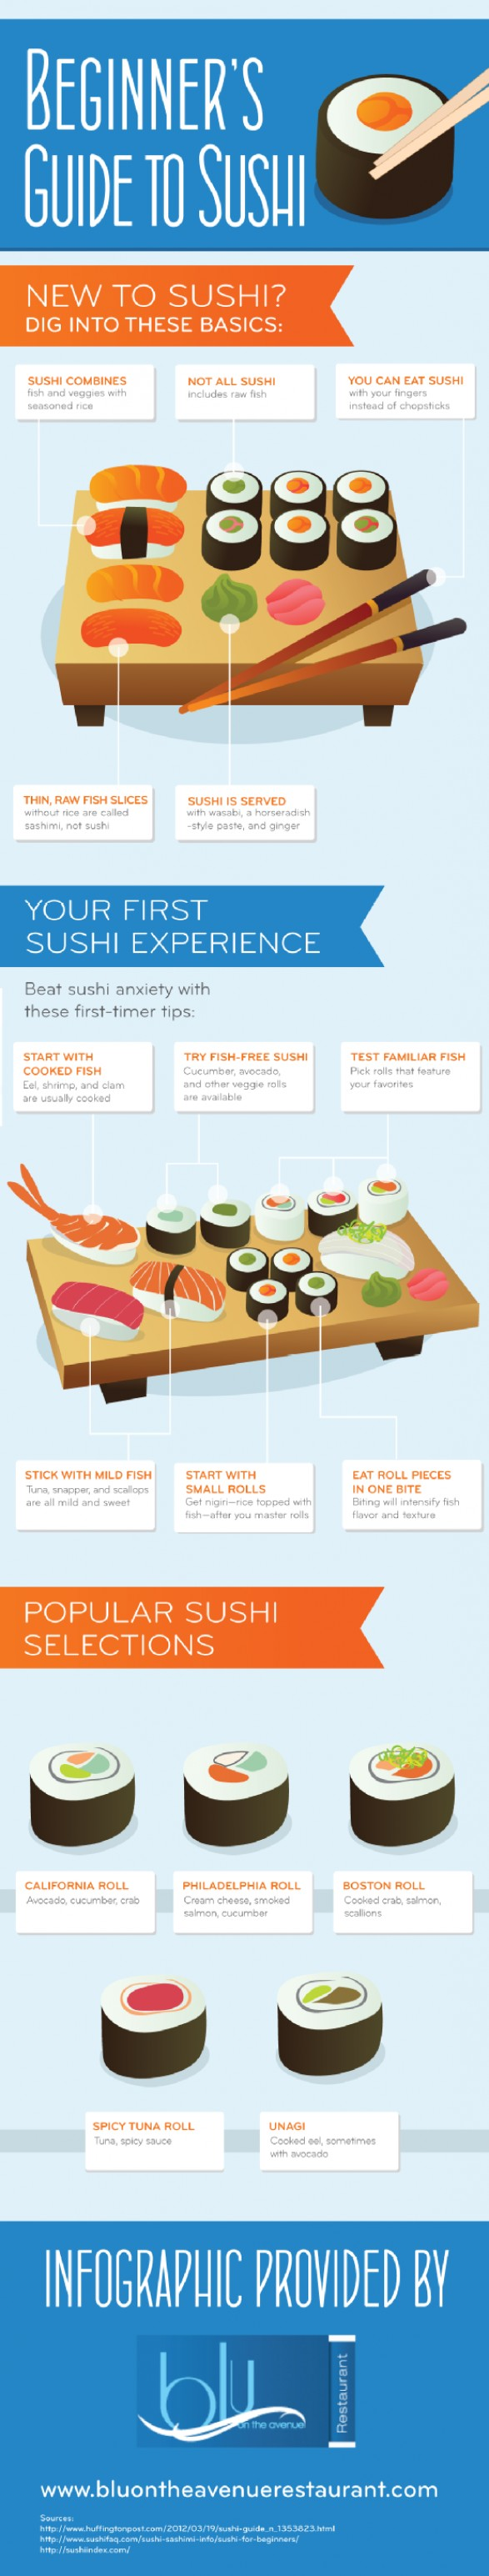 Beginners Guide to Sushi